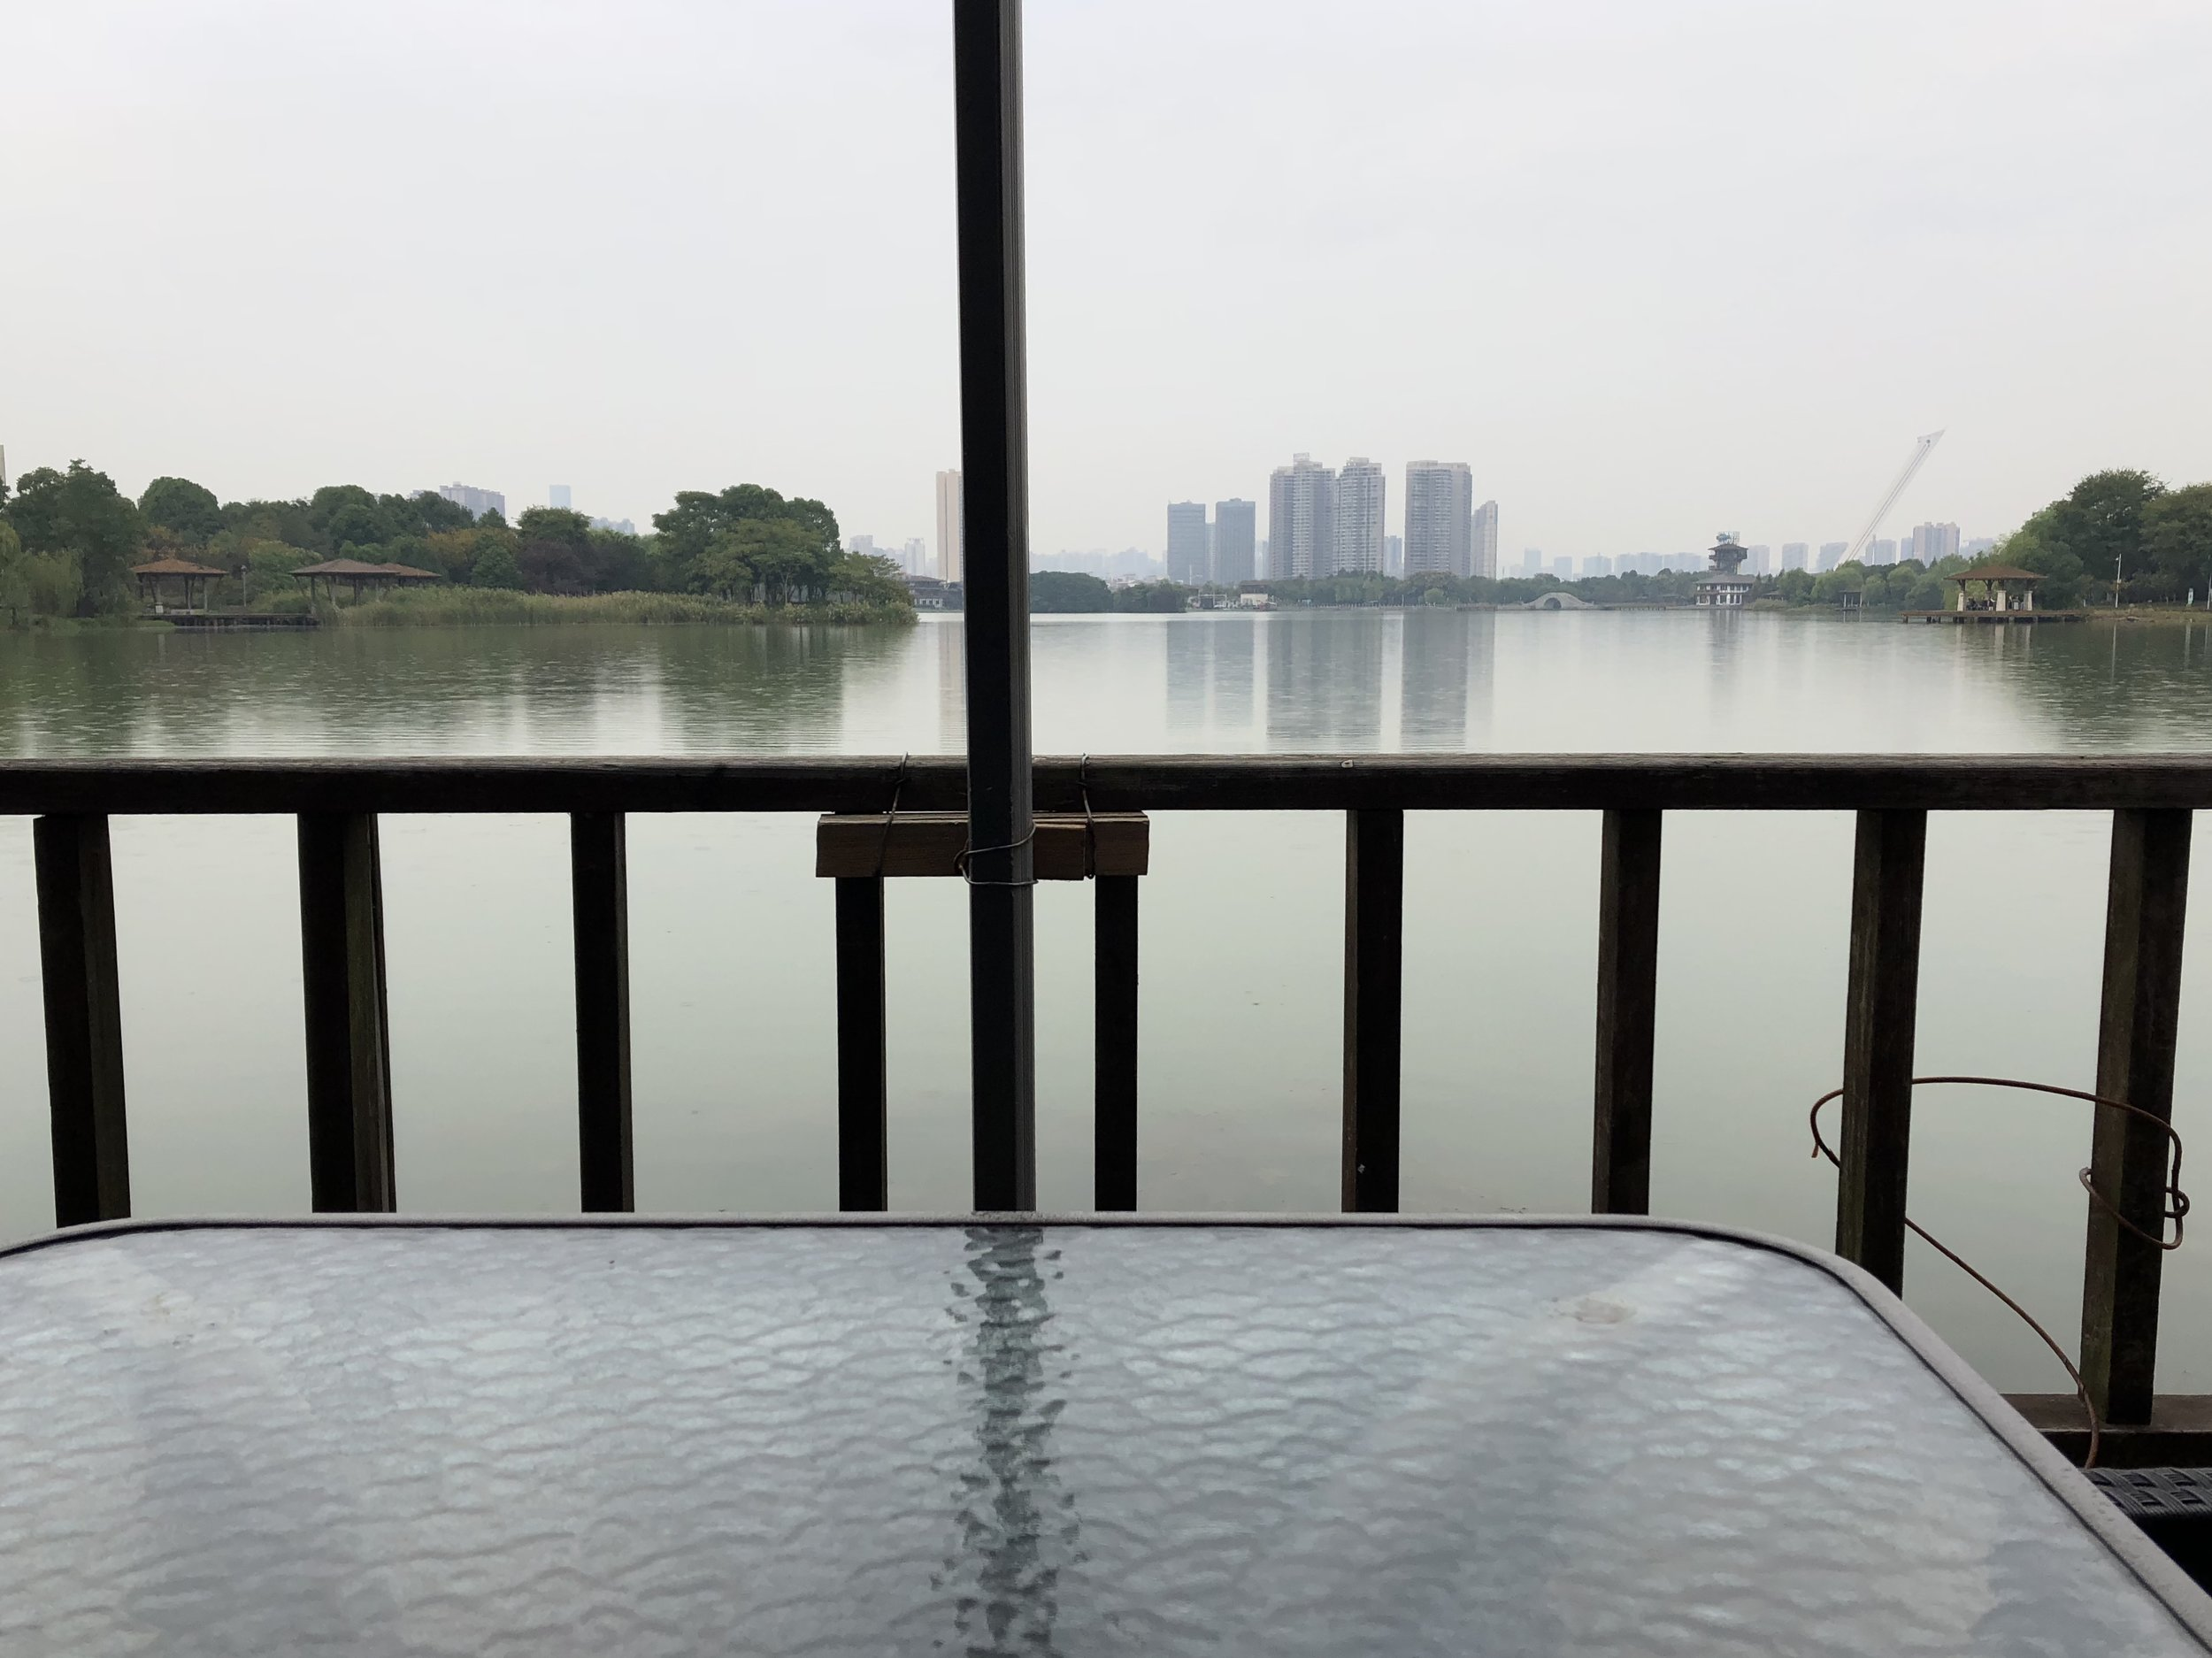 Enjoy lunch with views of Moonlake Park - Price: 元元 Moderate.Location: Based in Kaifu District about 30 minutes taxi ride from city centre.There are several restaurants to chose from along the promenade opposite Moonlake Park. Try B.E. Elephant for amazing Thai curries! You can walk around the park after eating. Of course, better to visit on a sunny day but just as good in light rain.